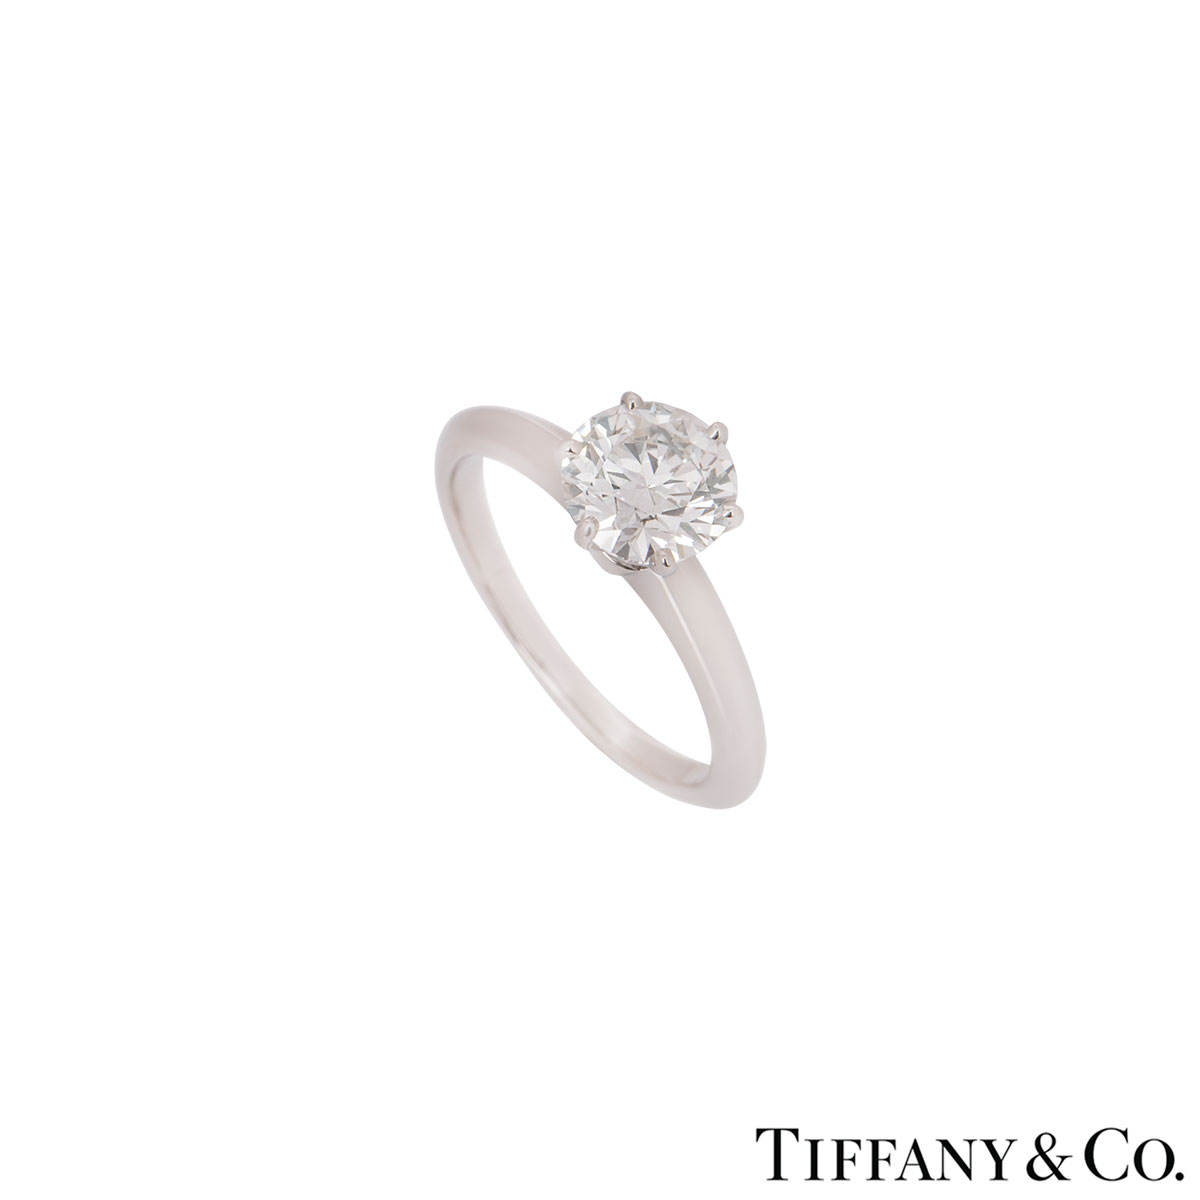 Tiffany & Co. Platinum Diamond Setting Ring 1.52ct I/VVS2